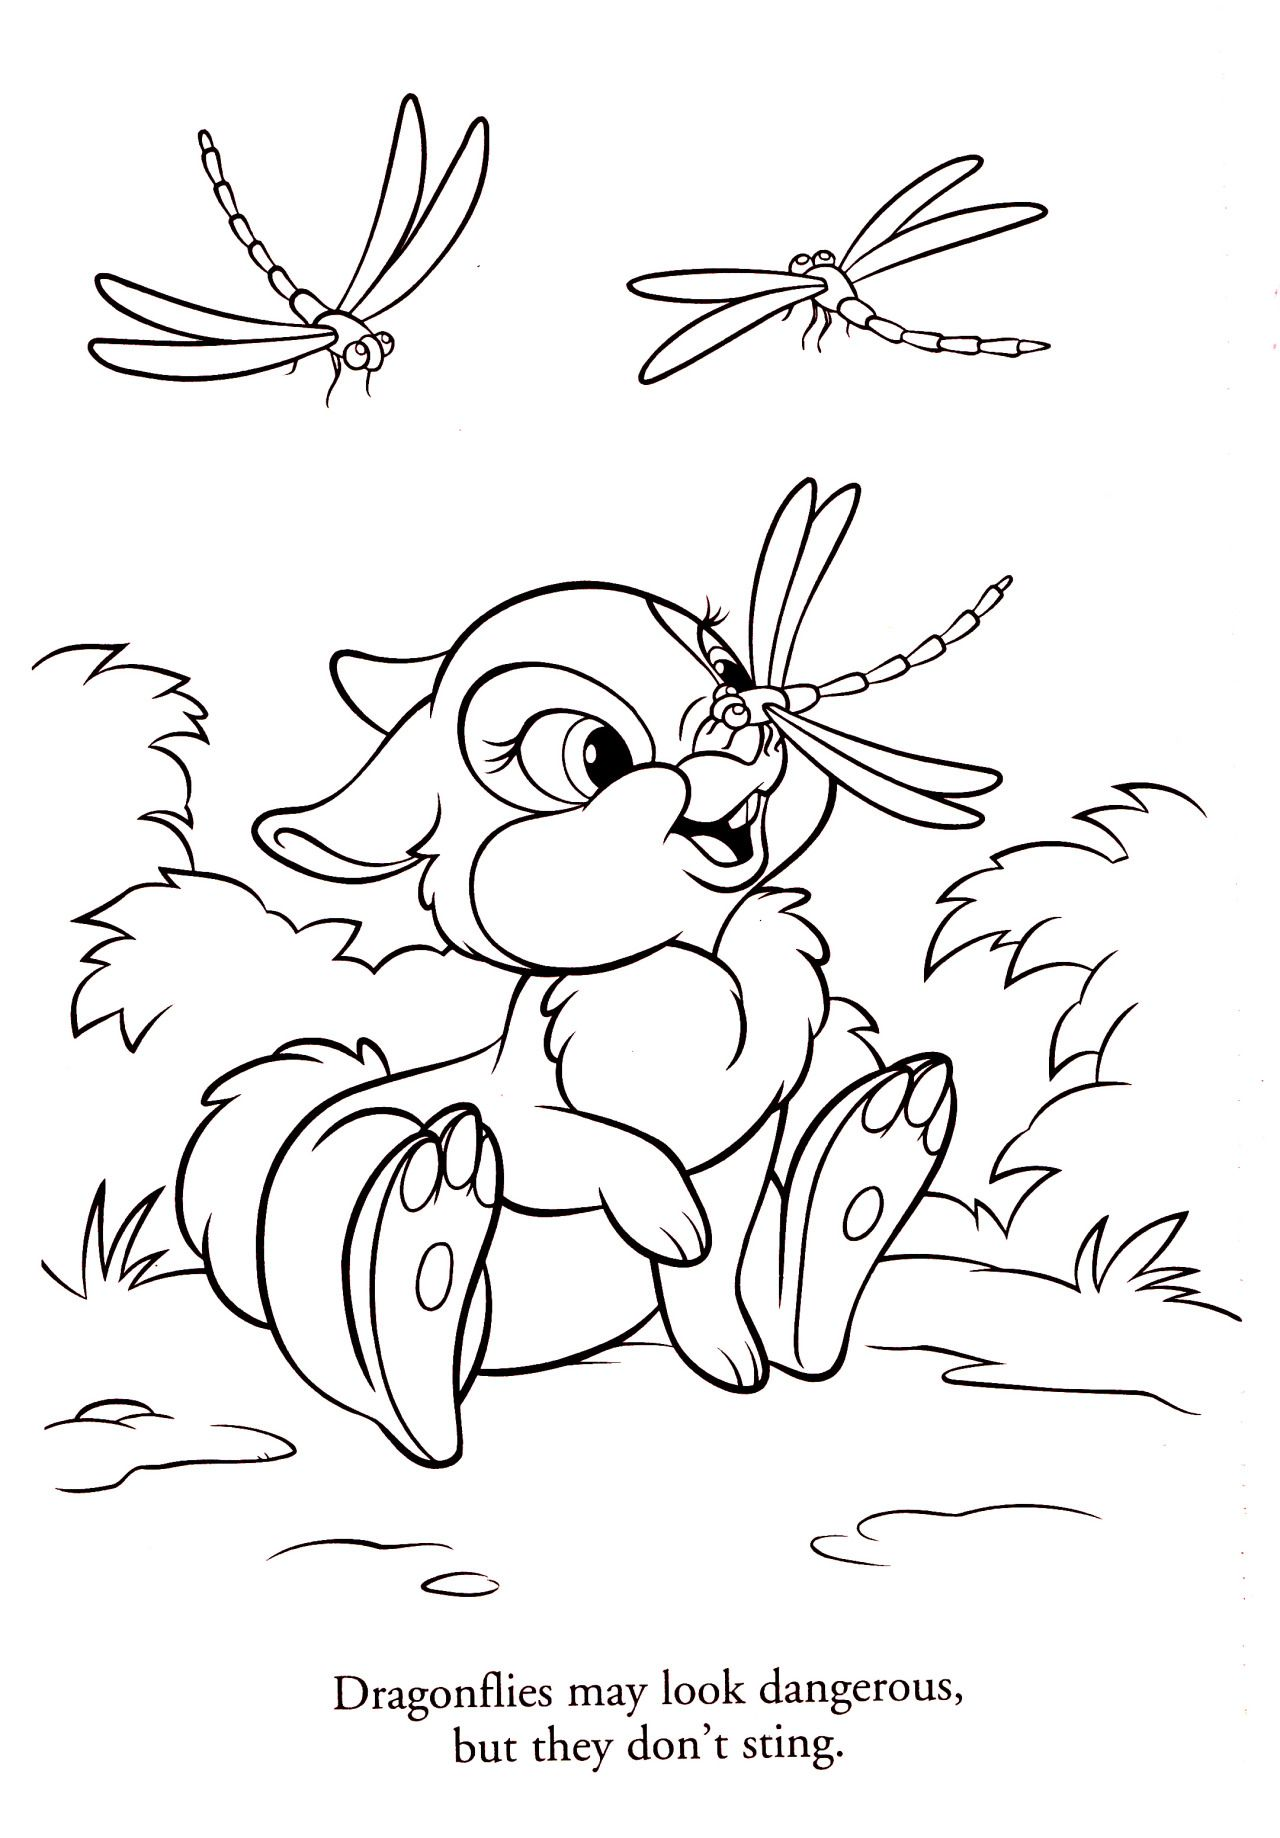 Disney Coloring Pages Photo Disney Coloring Pages Cute Coloring Pages Coloring Books [ 1838 x 1280 Pixel ]